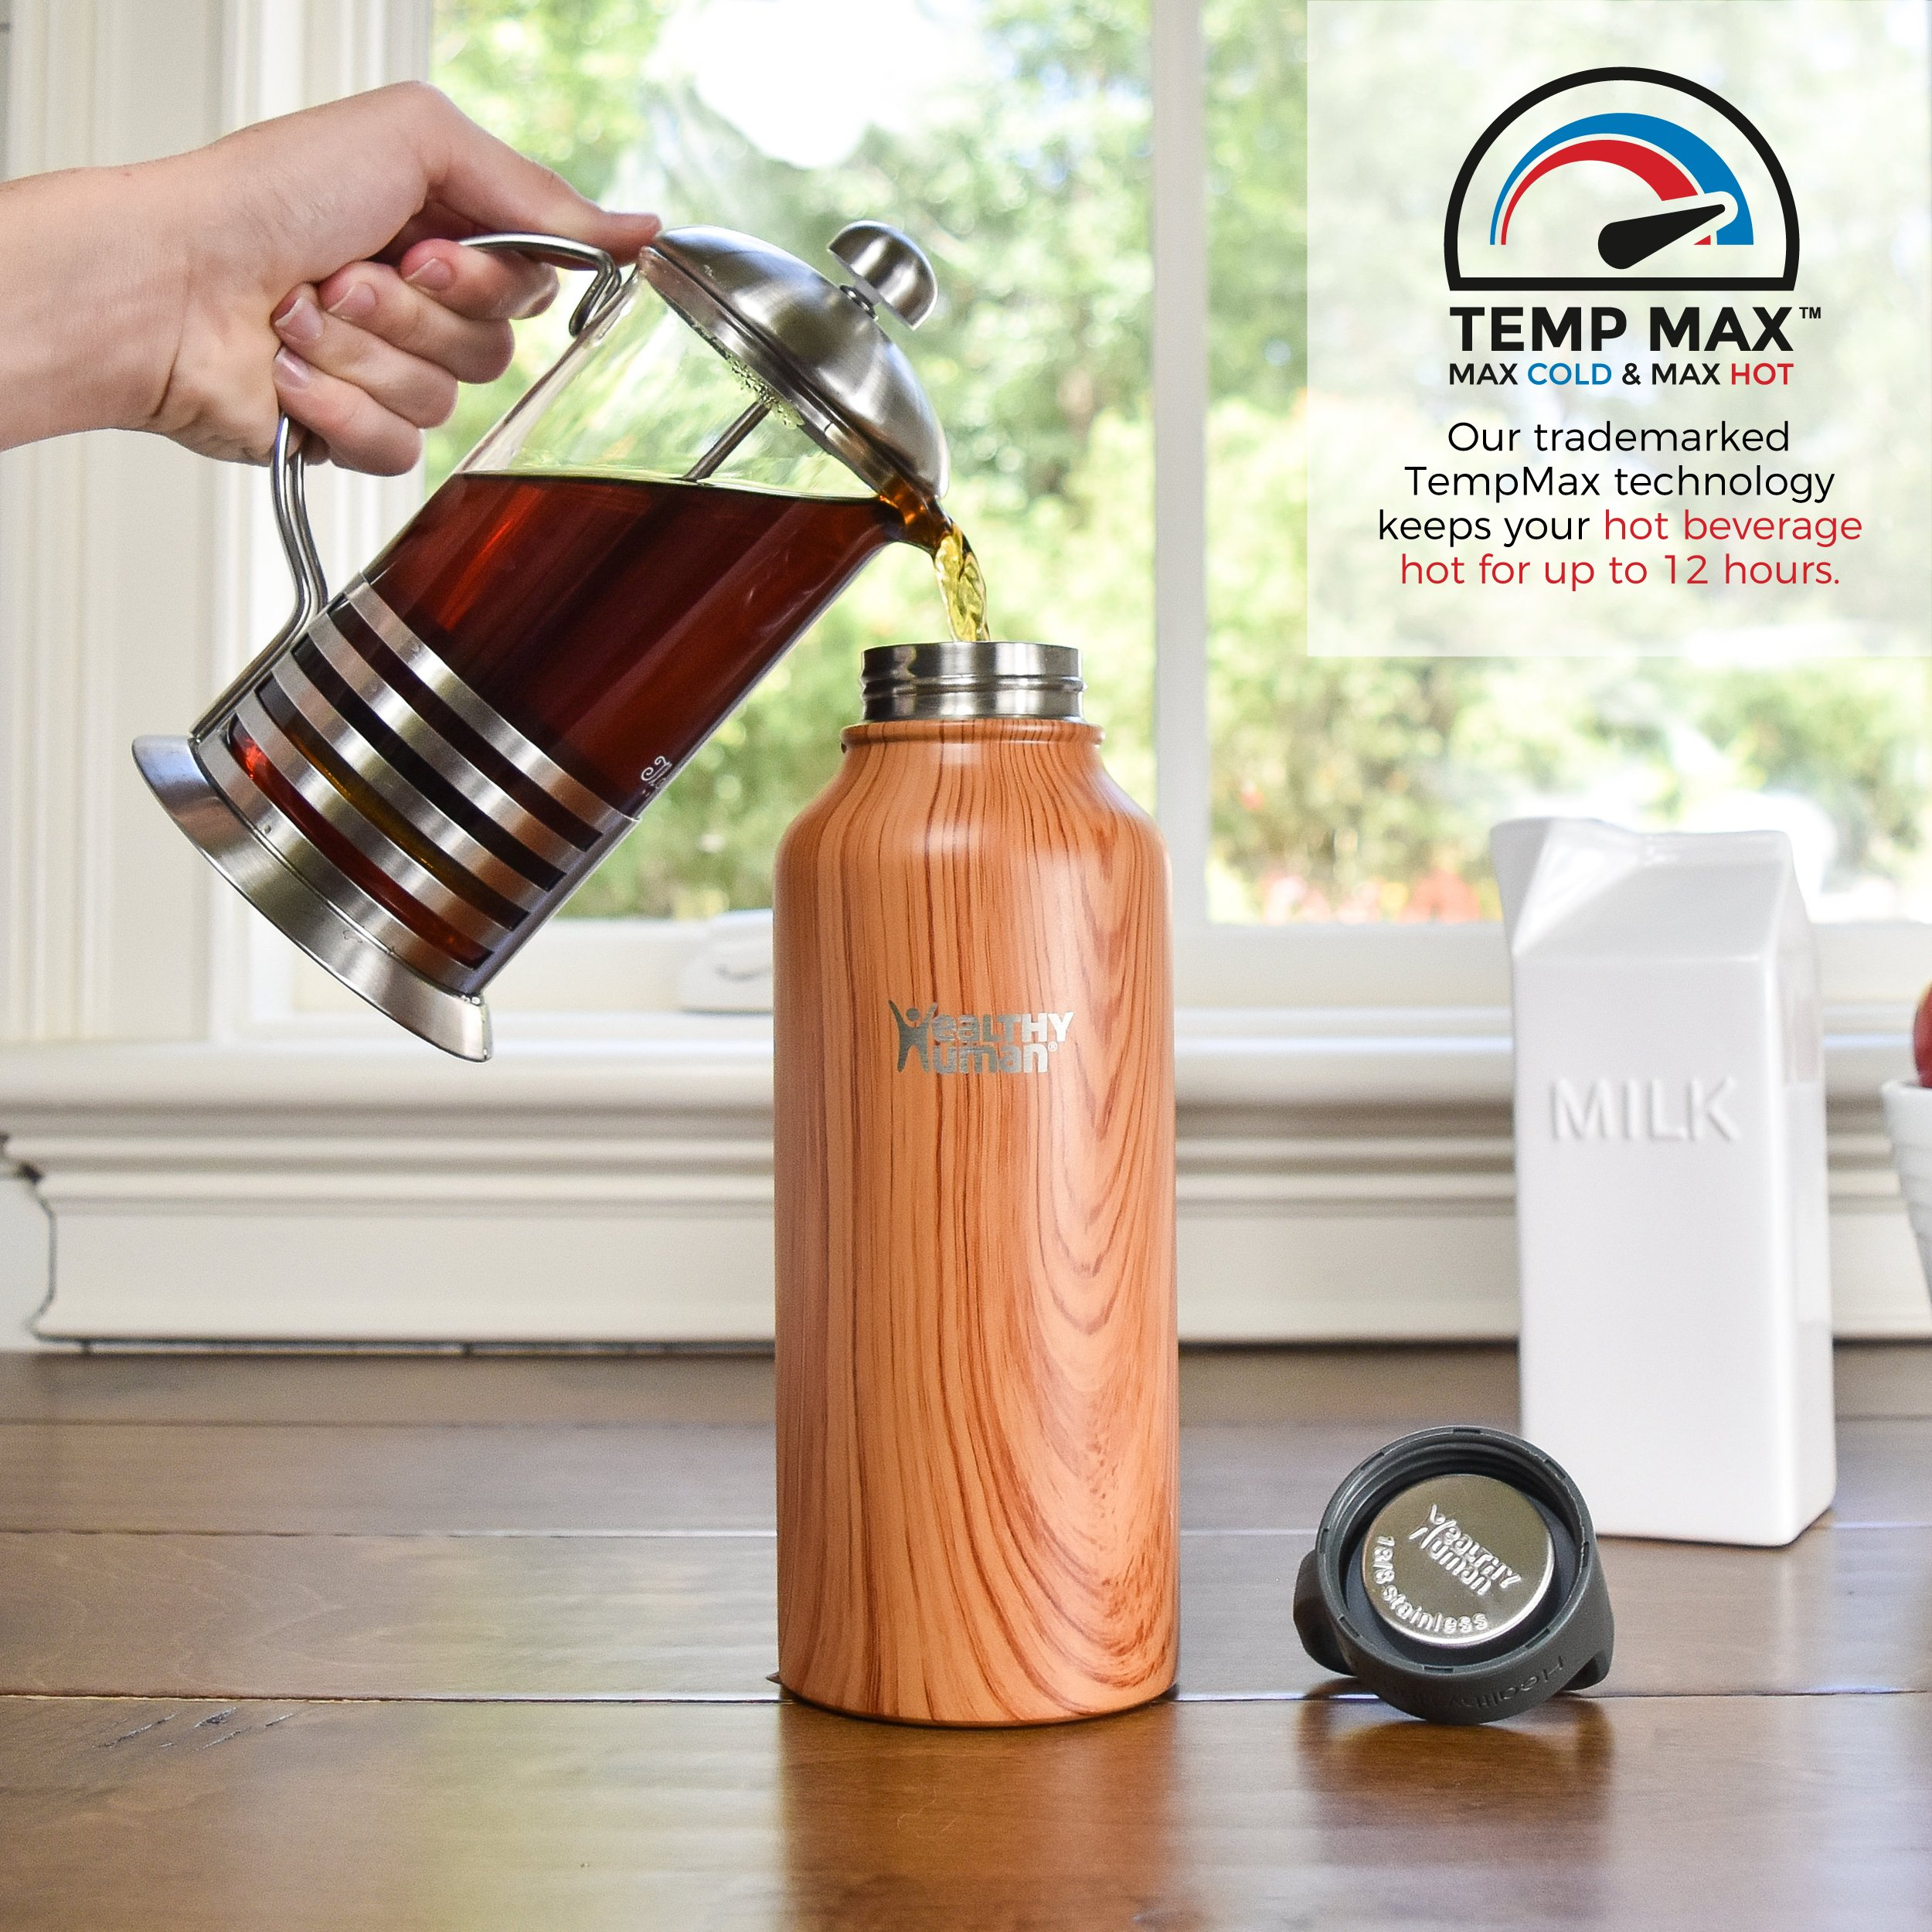 Healthy Human Stainless Steel Insulated Travel Sports Water Bottle Thermos - Leak Proof - No Sweating, Keeps Your Drink Hot & Cold - Natural Wood - 32 oz by Healthy Human (Image #5)